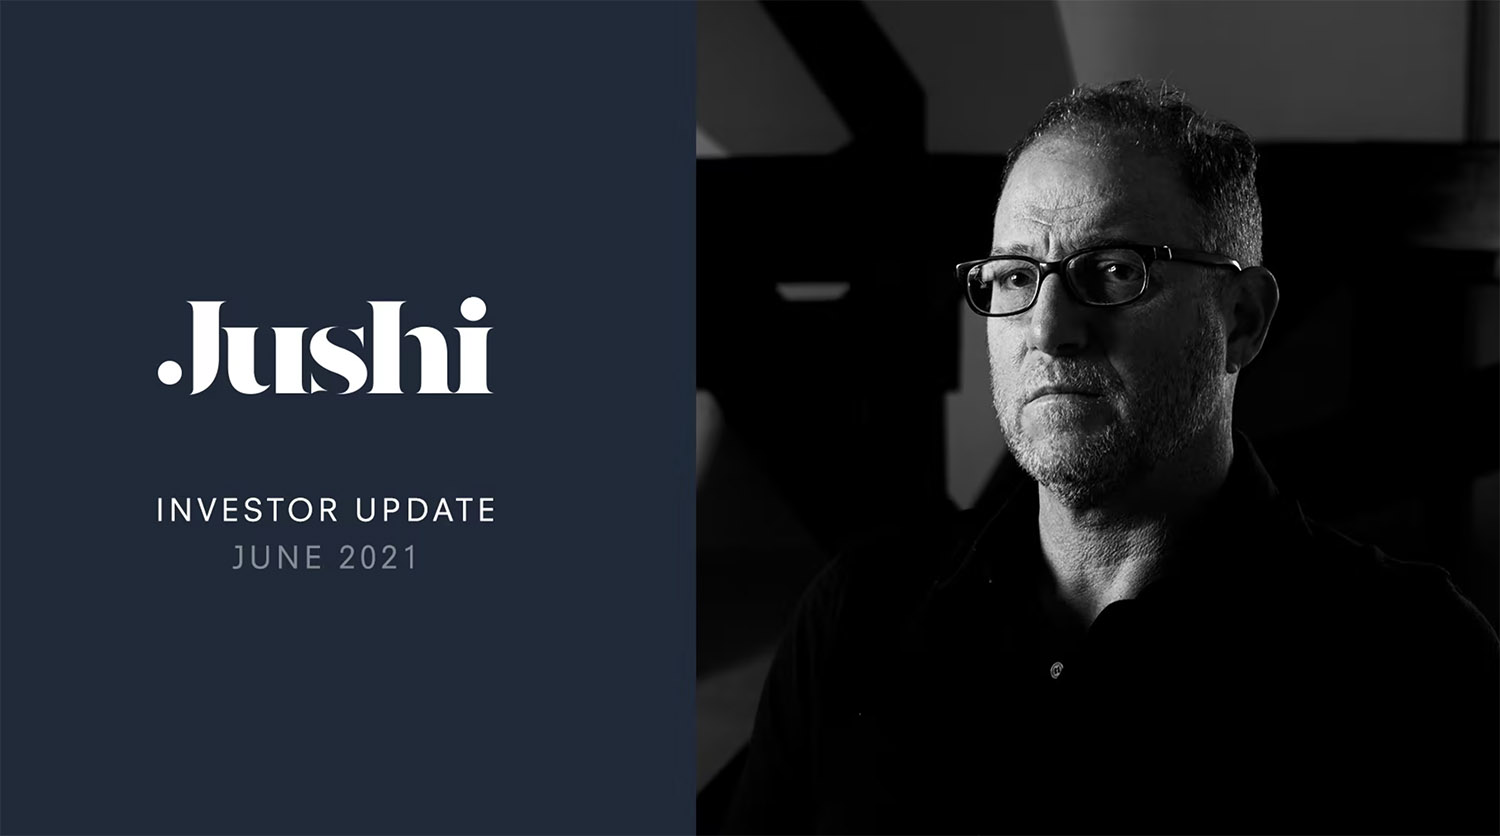 Investor Update with Jim Cacioppo, CEO & Chairman of Jushi Holdings Inc. (June 2021)